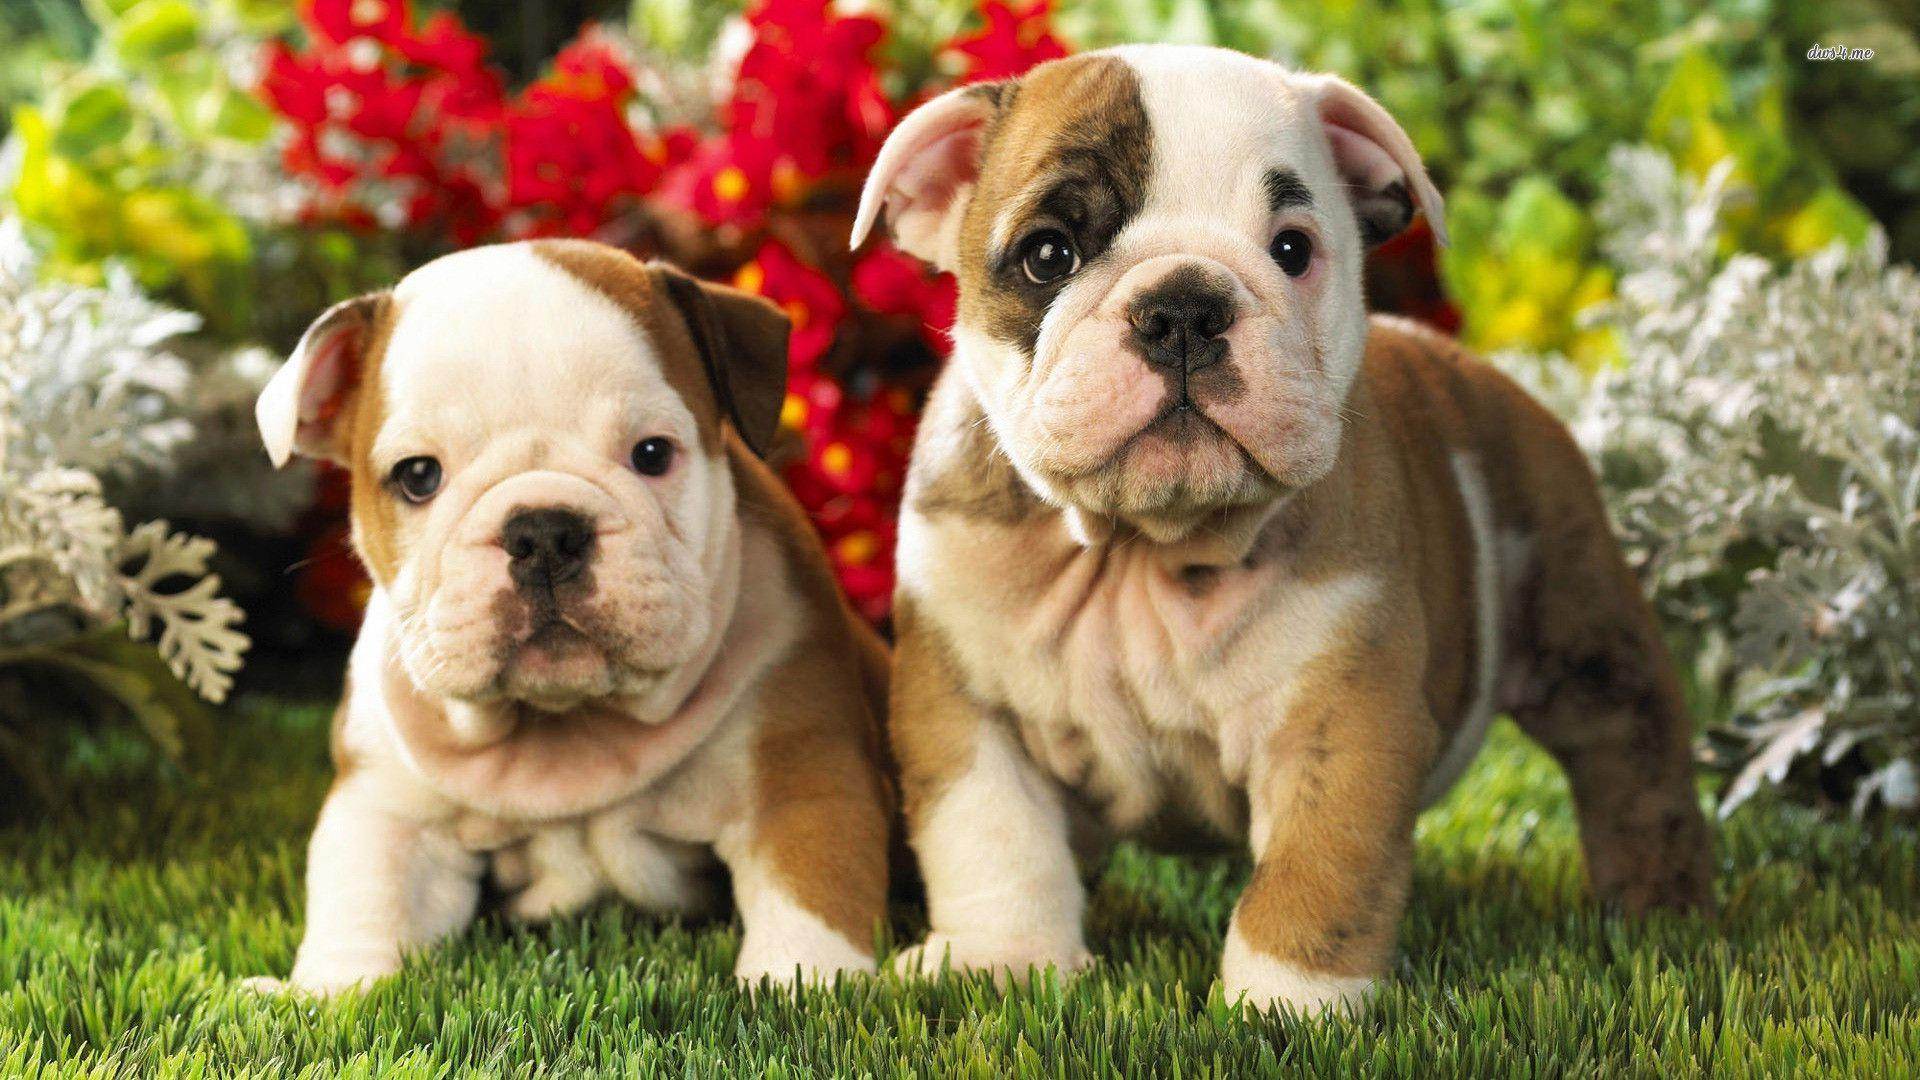 English Bulldog Puppies Wallpaper 1080p « Desktop Background ...